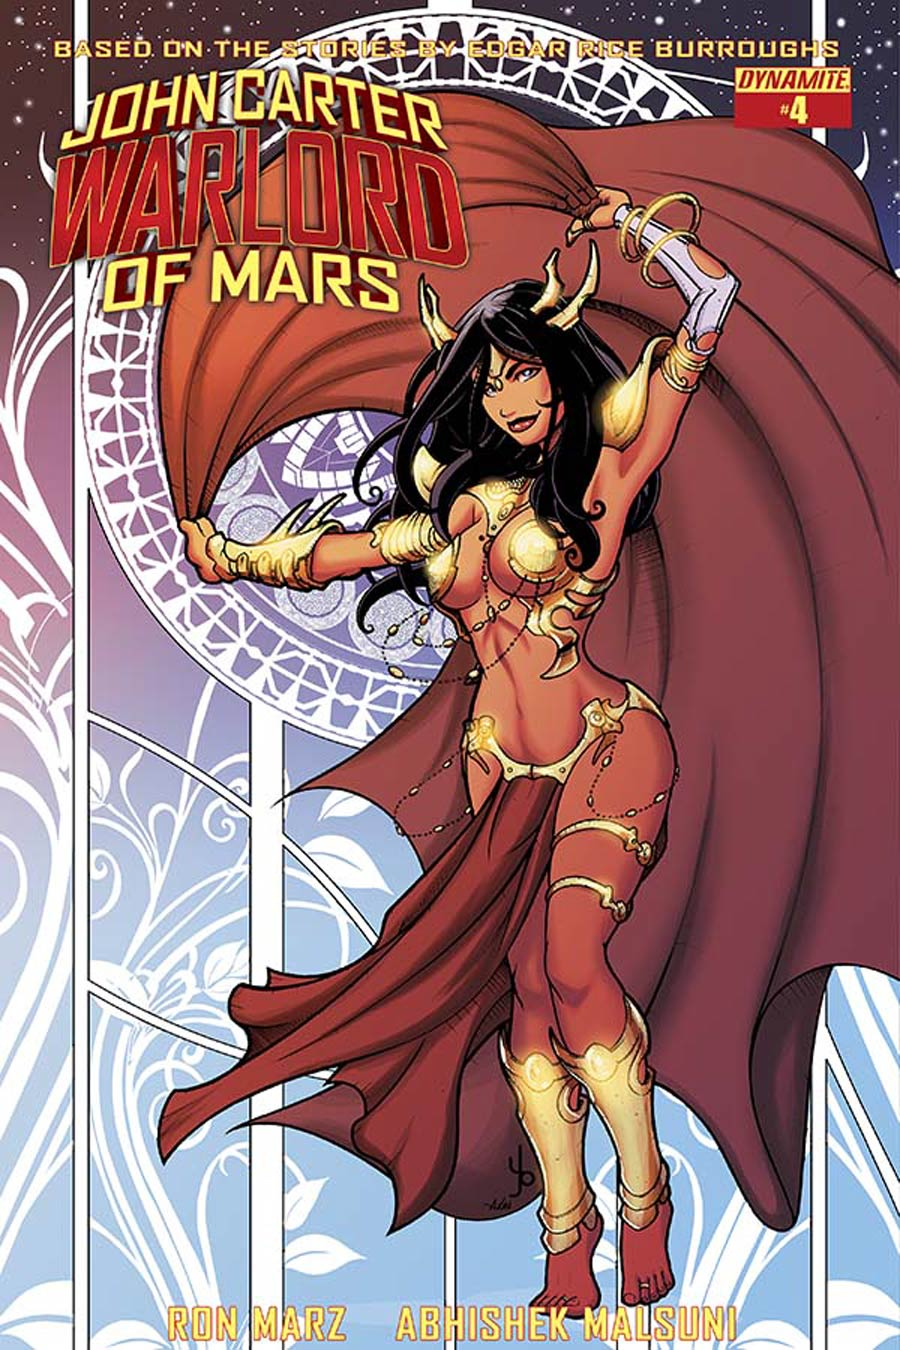 John Carter Warlord Of Mars Vol 2 #4 Cover D Variant Yonami Subscription Cover